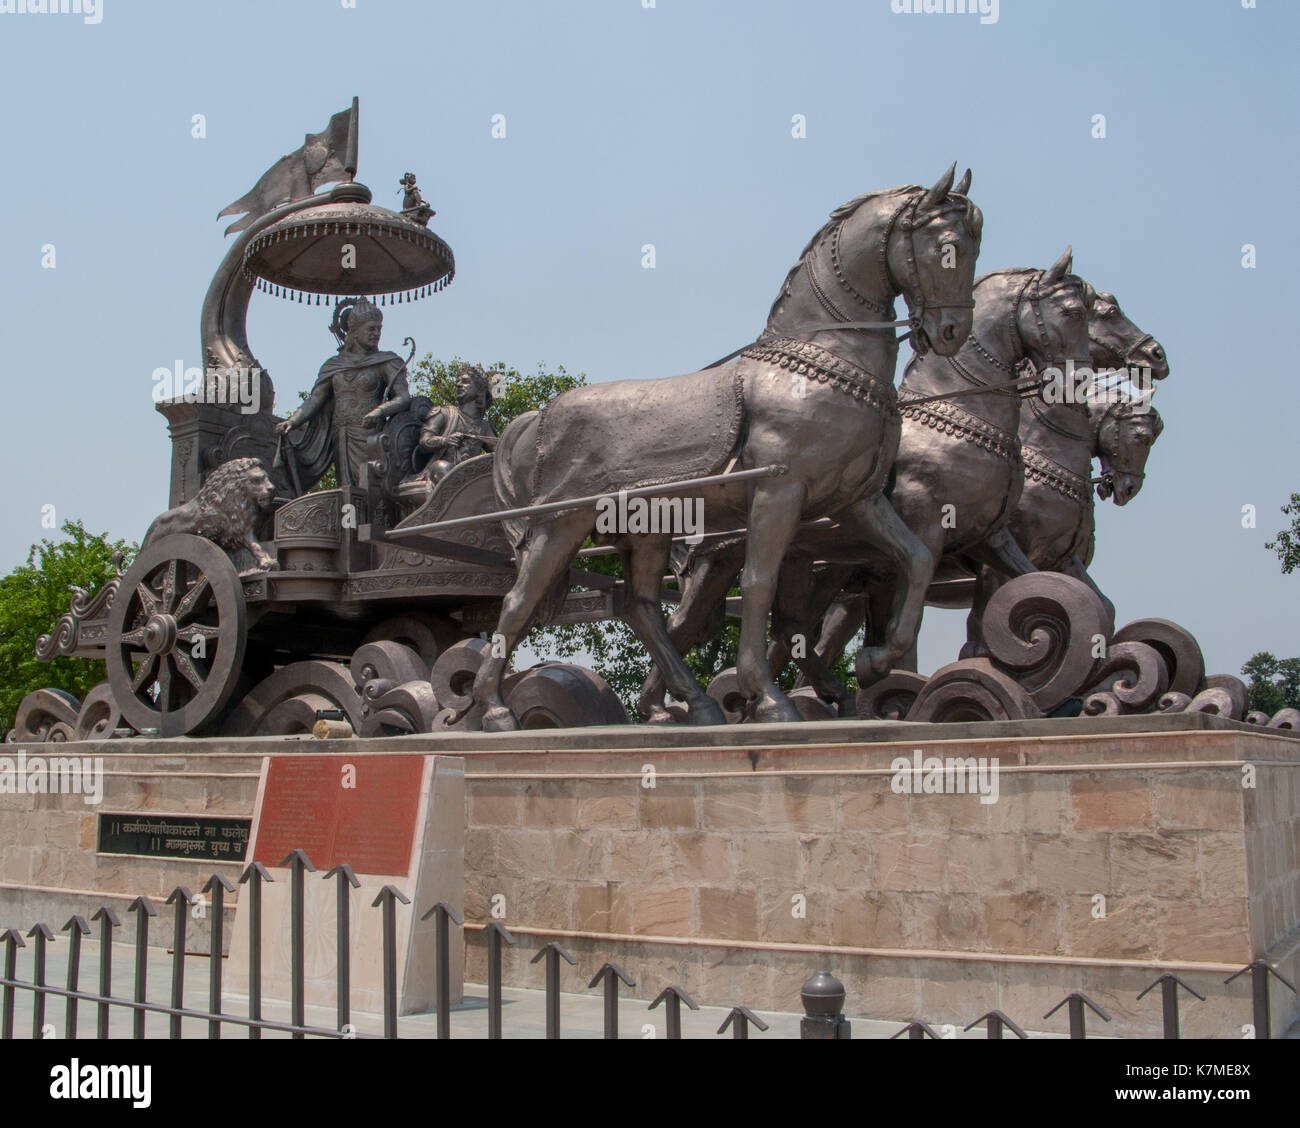 The statue of Krishna and Arjuna on the chariot, without people.  Kurukshetra, Haryana, India. - Stock Image